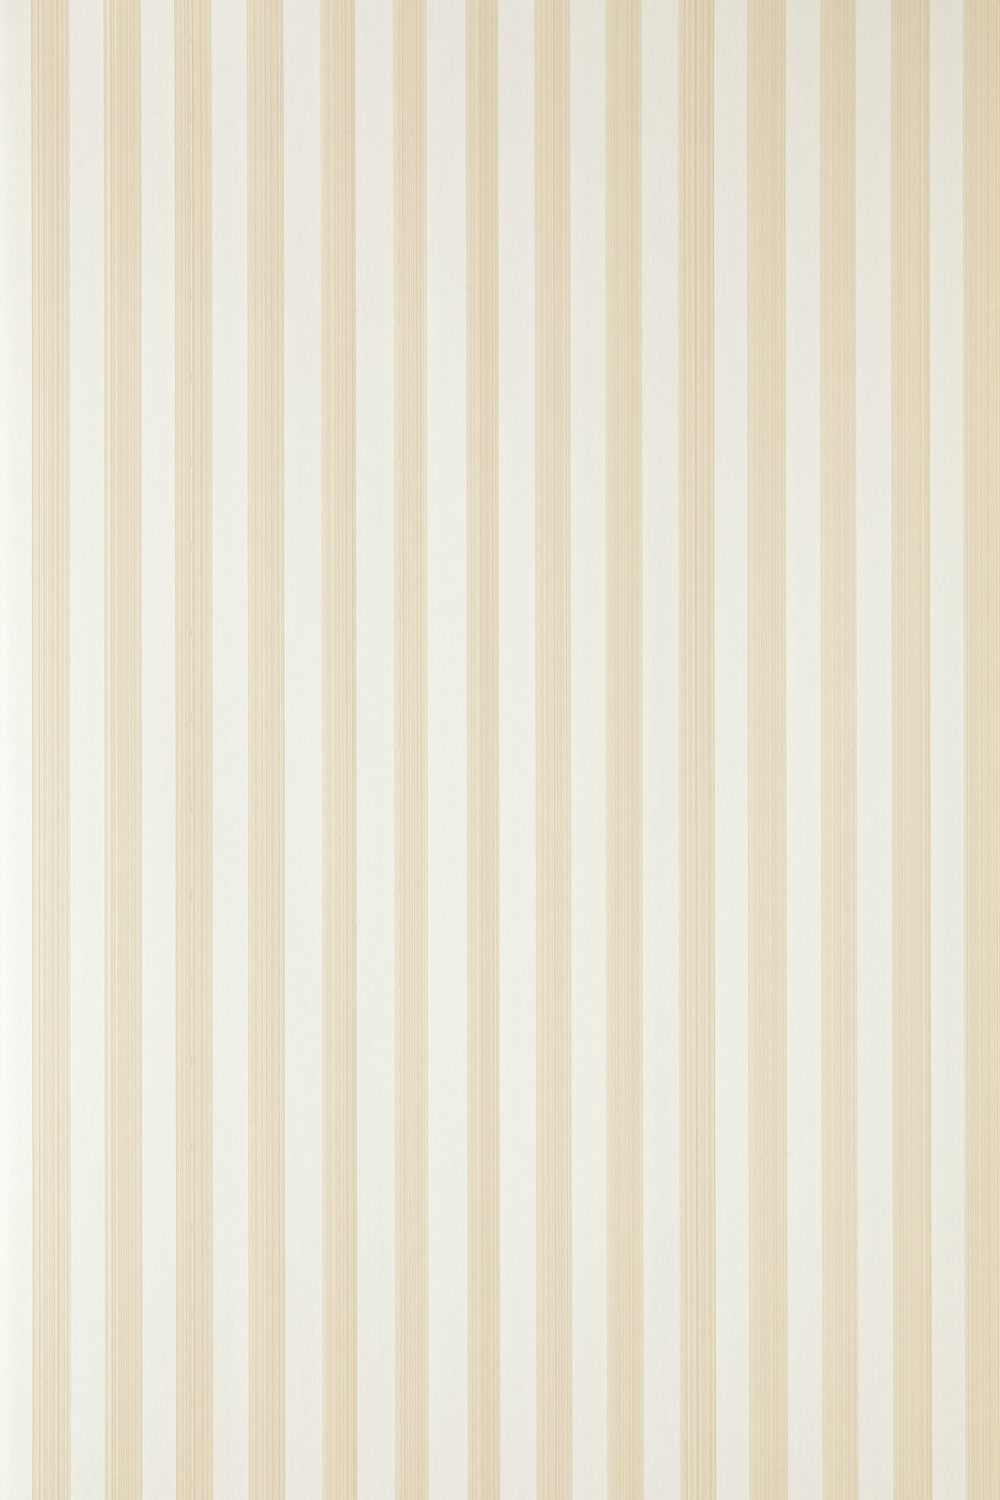 Farrow & Ball Closet Stripe BP 346